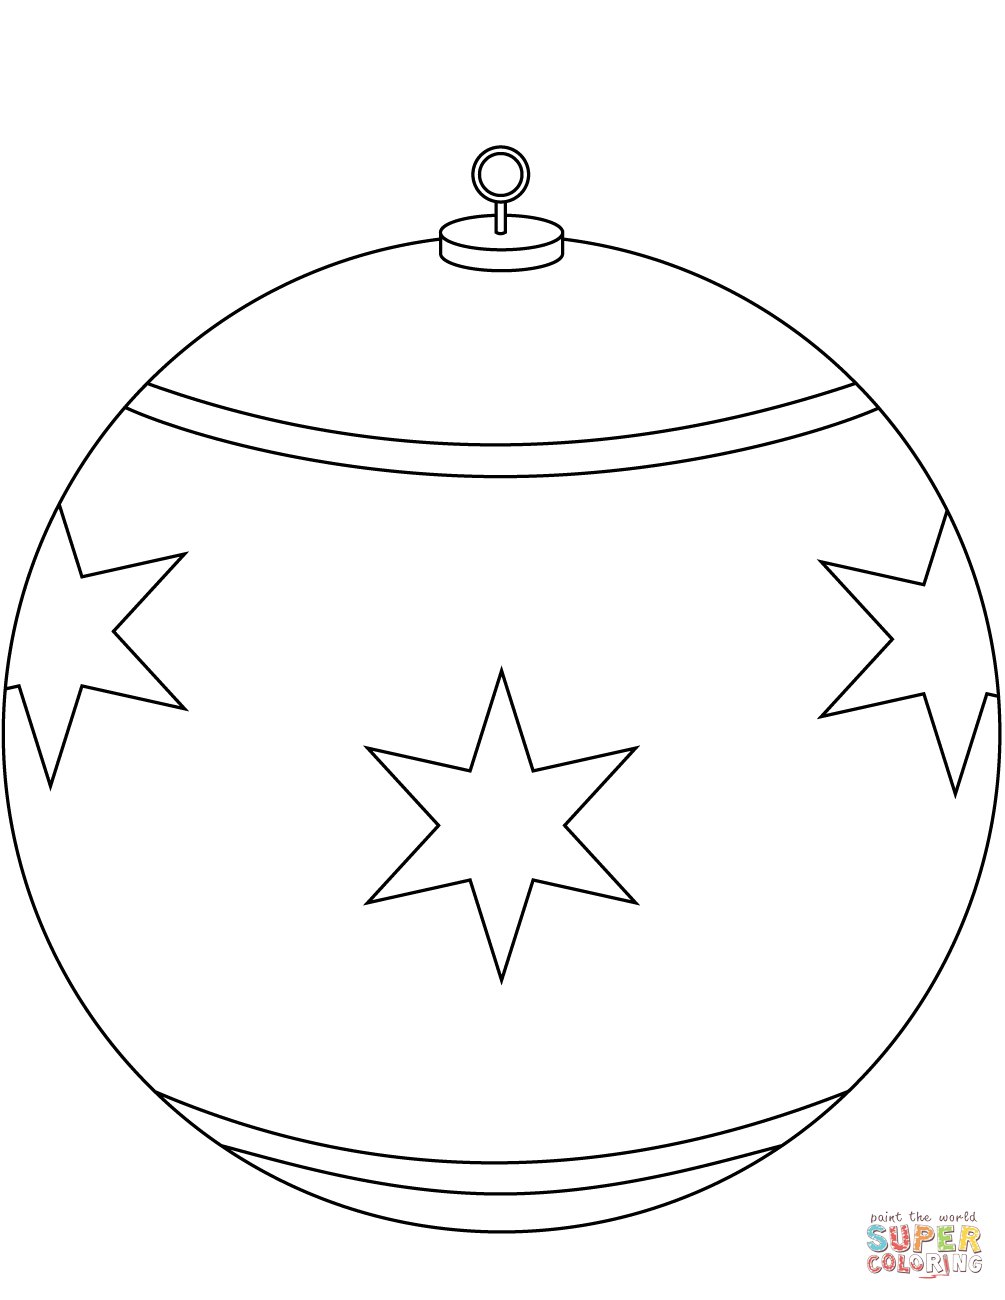 Round Christmas Ornament Coloring Page | Free Printable Coloring Pages - Free Printable Christmas Ornament Coloring Pages